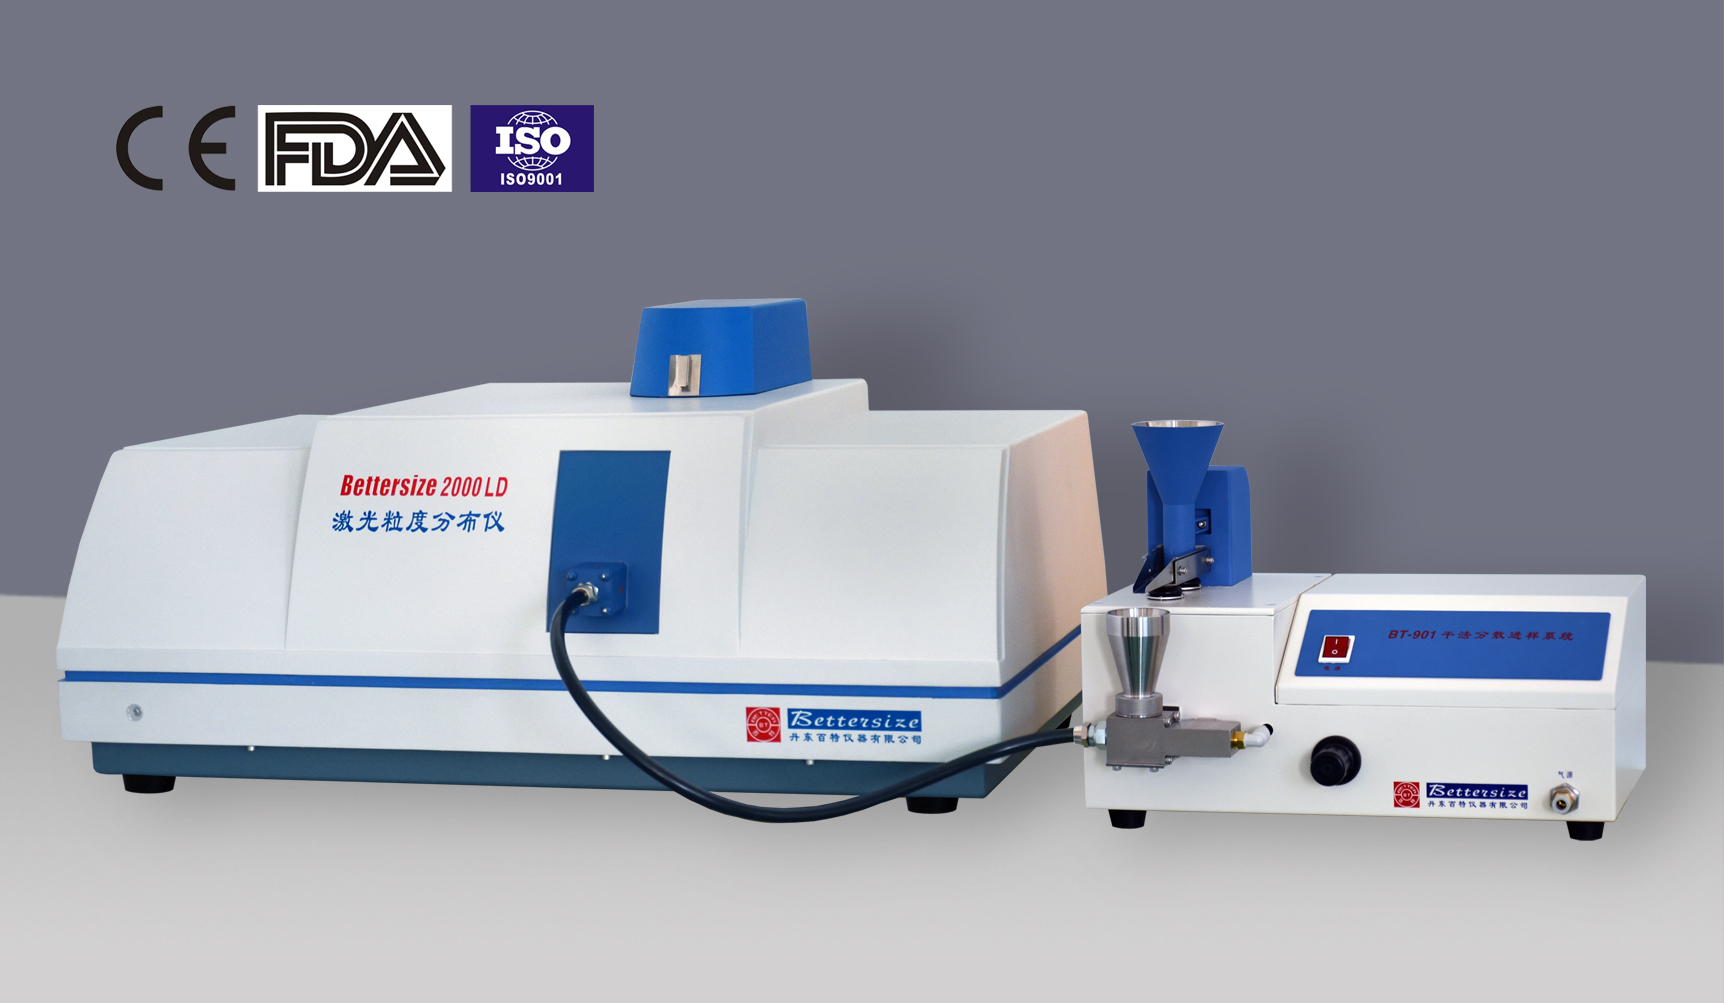 Bettersize 2000LD Intelligent Laser Particle Size Analyzer